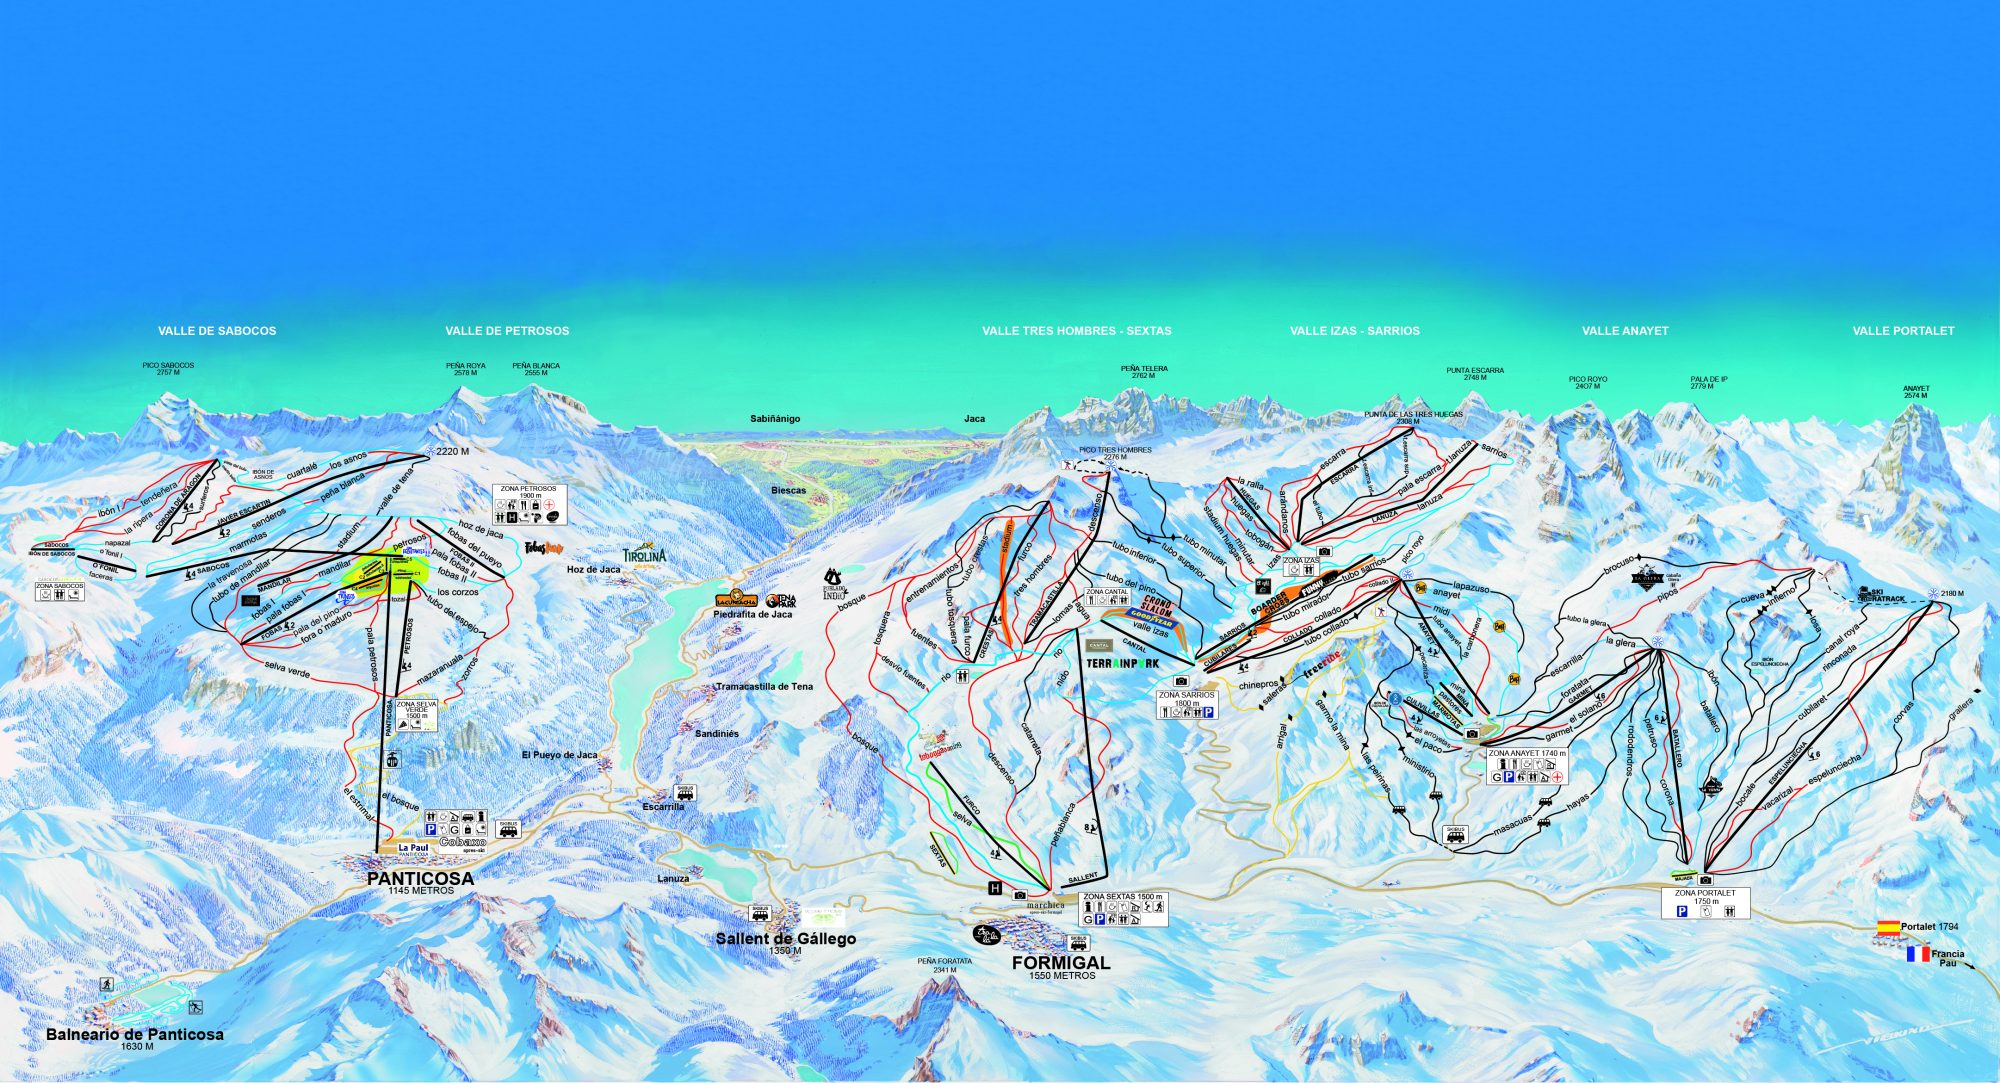 Formigal Panticosa ski map. Green light in Formigal for installation on a new chairlift.